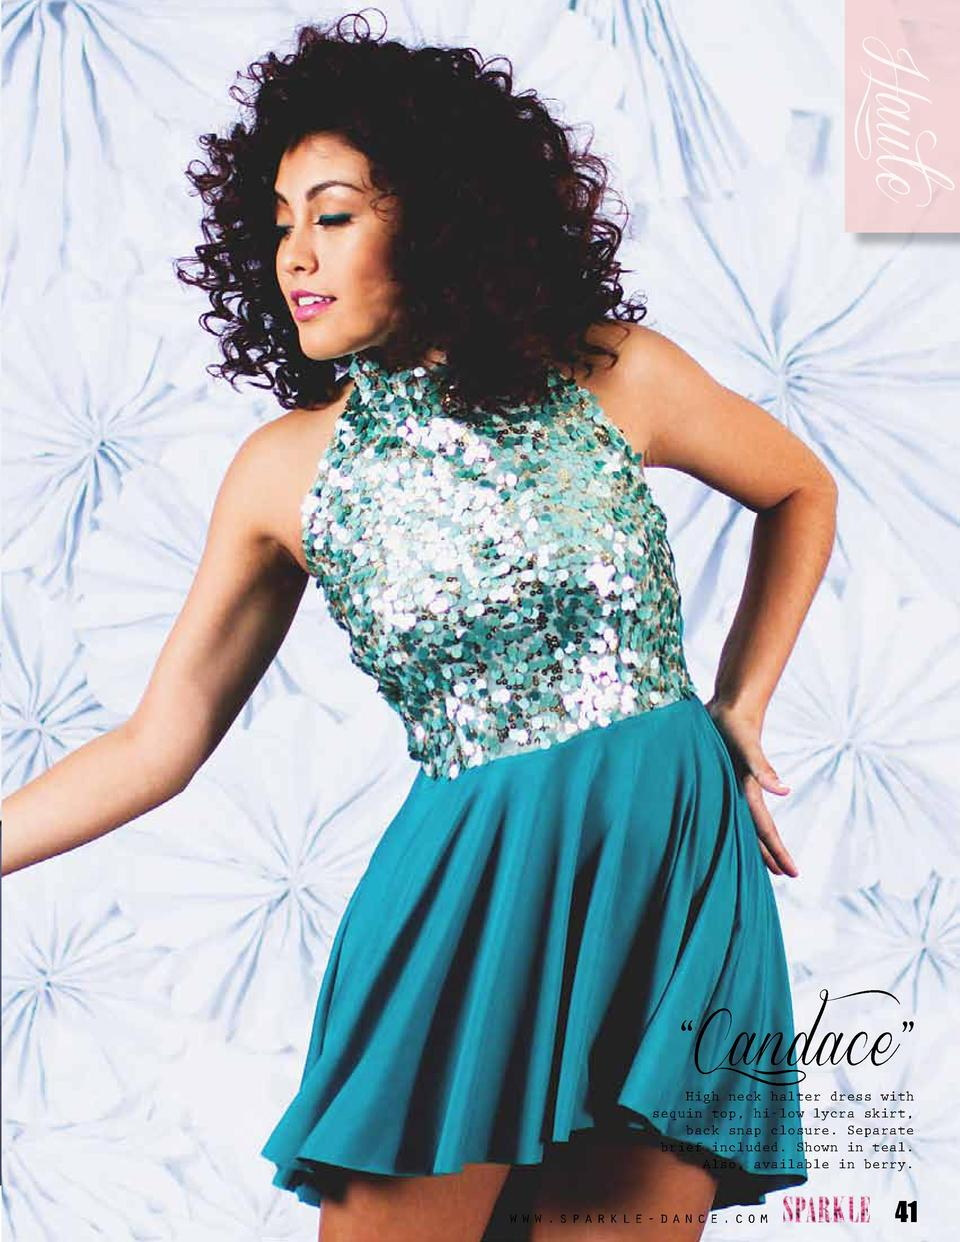 Haute    Candace     High neck halter dress with sequin top, hi-low lycra skirt, back snap closure. Separate brief include...